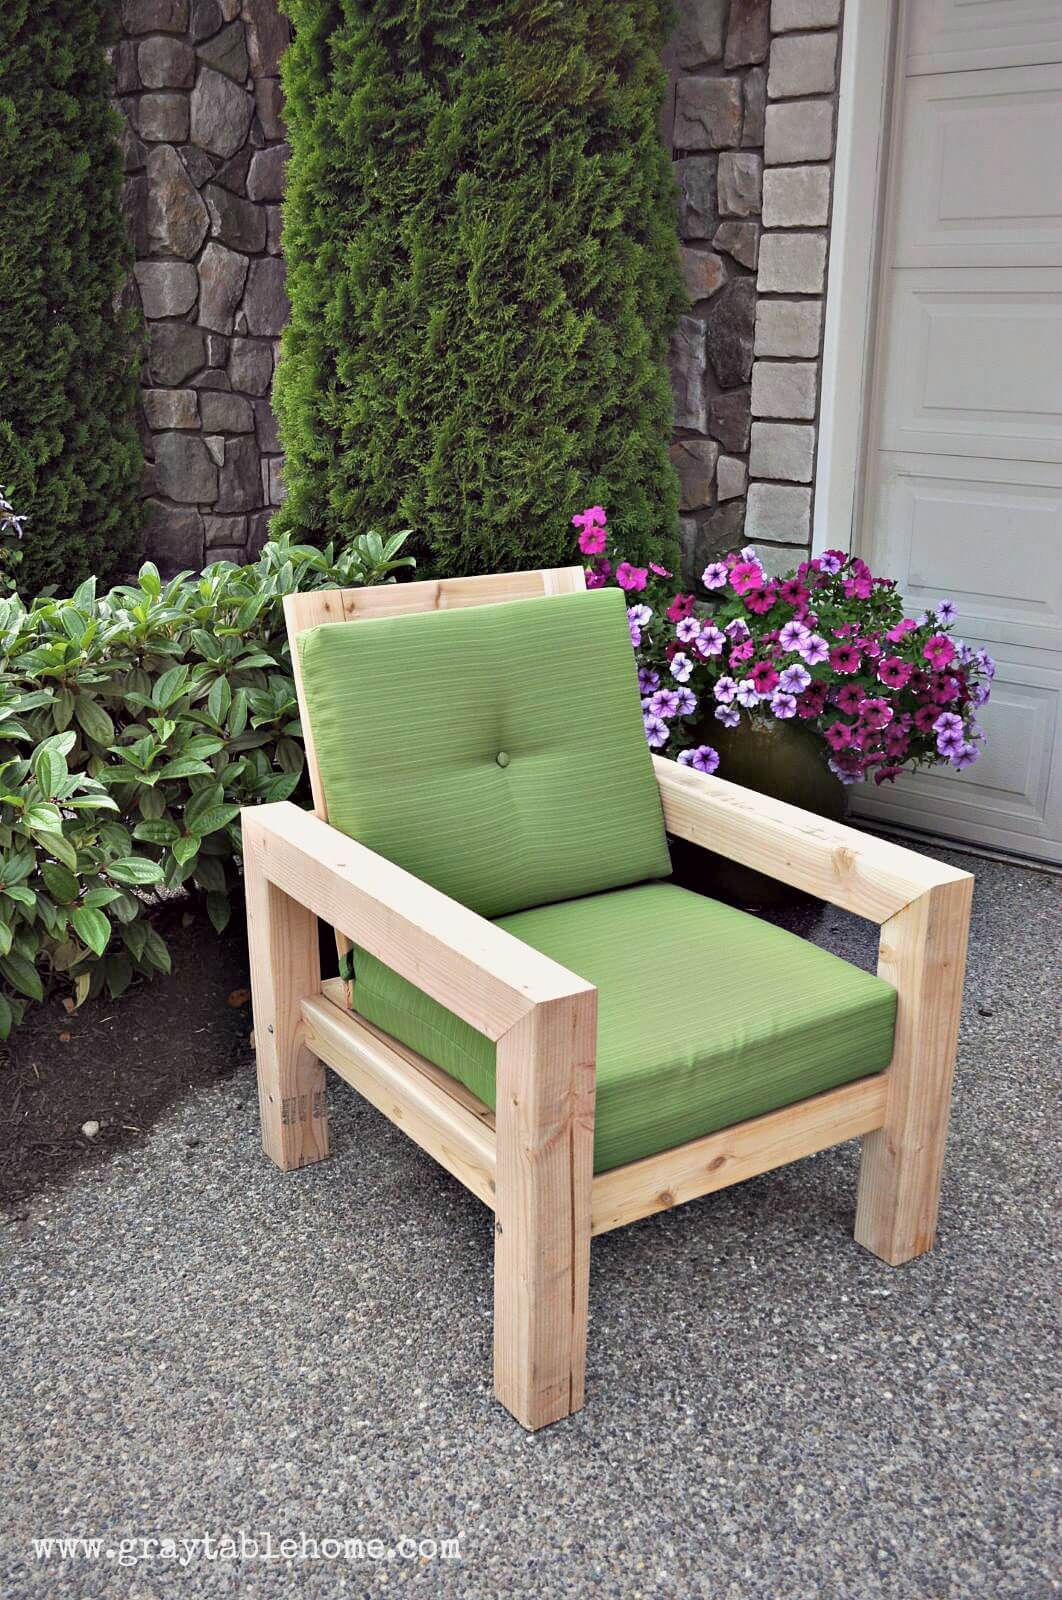 garden cubicle wooden block chair diy garden furniture - Garden Furniture Diy